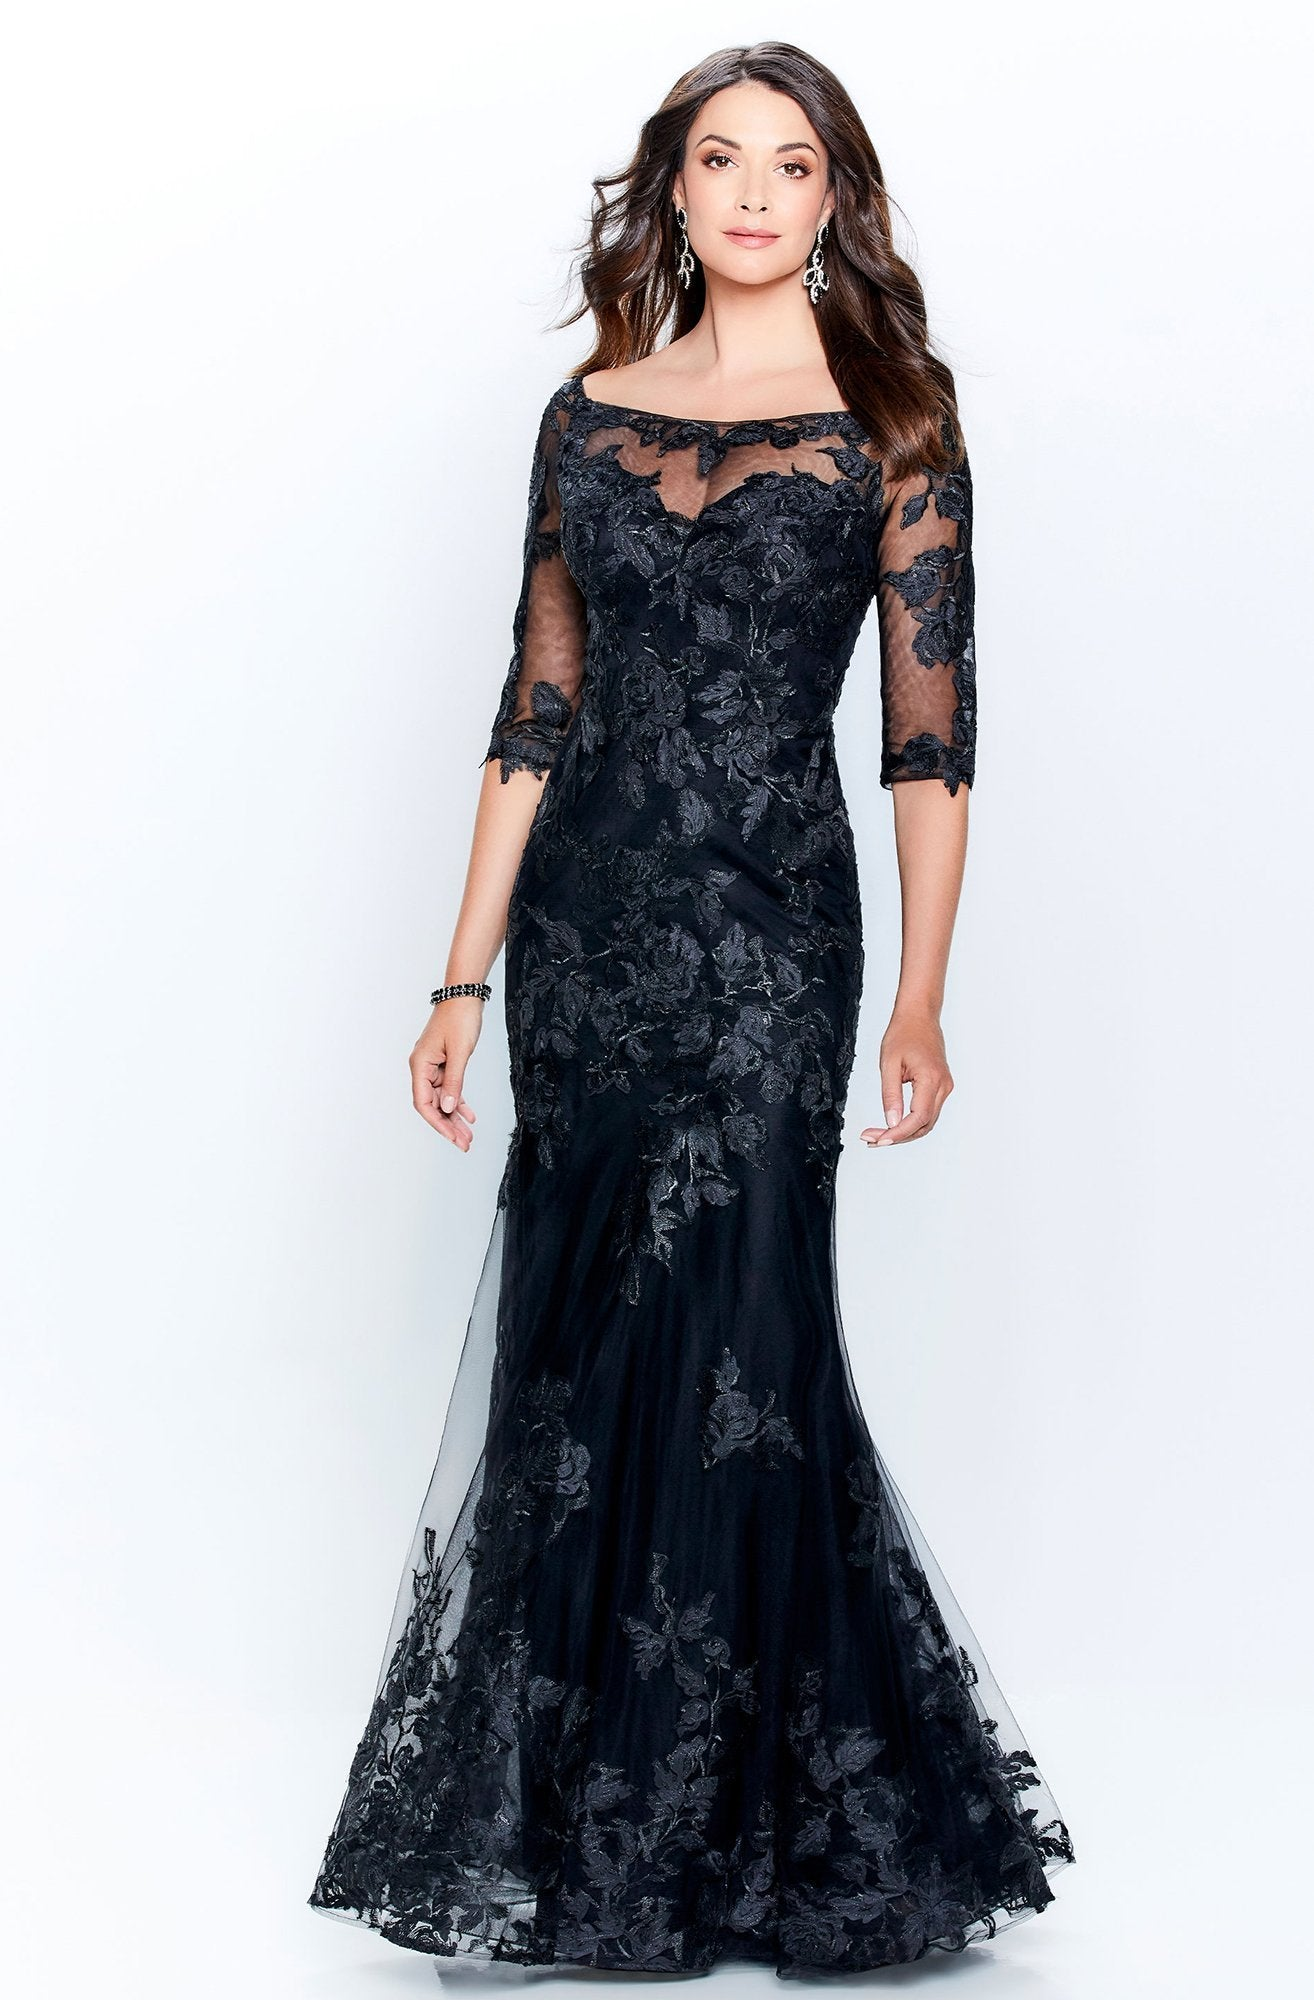 Mon Cheri - Illusion Scoop Lace Embroidered Trumpet Gown 120919 In Black